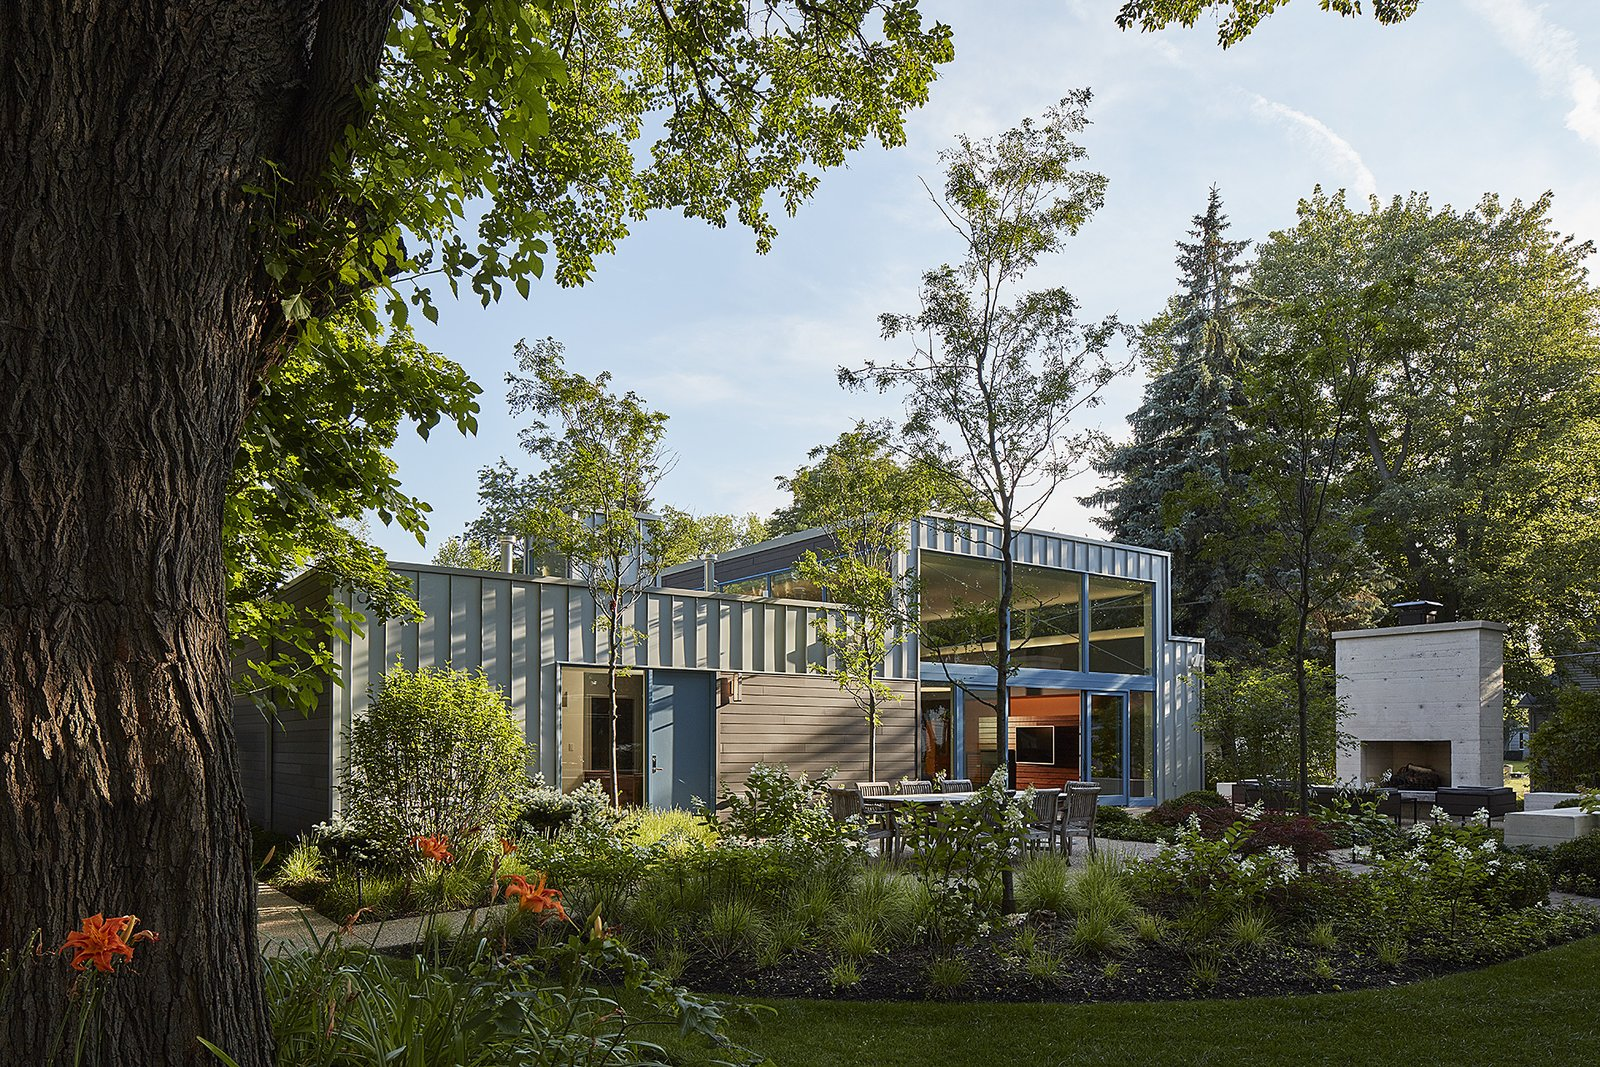 north elevation Tagged: Back Yard, Grass, Large Patio, Porch, Deck, Exterior, House, and Metal Siding Material.  Courtyard Residence by Kuklinski + Rappe Architects